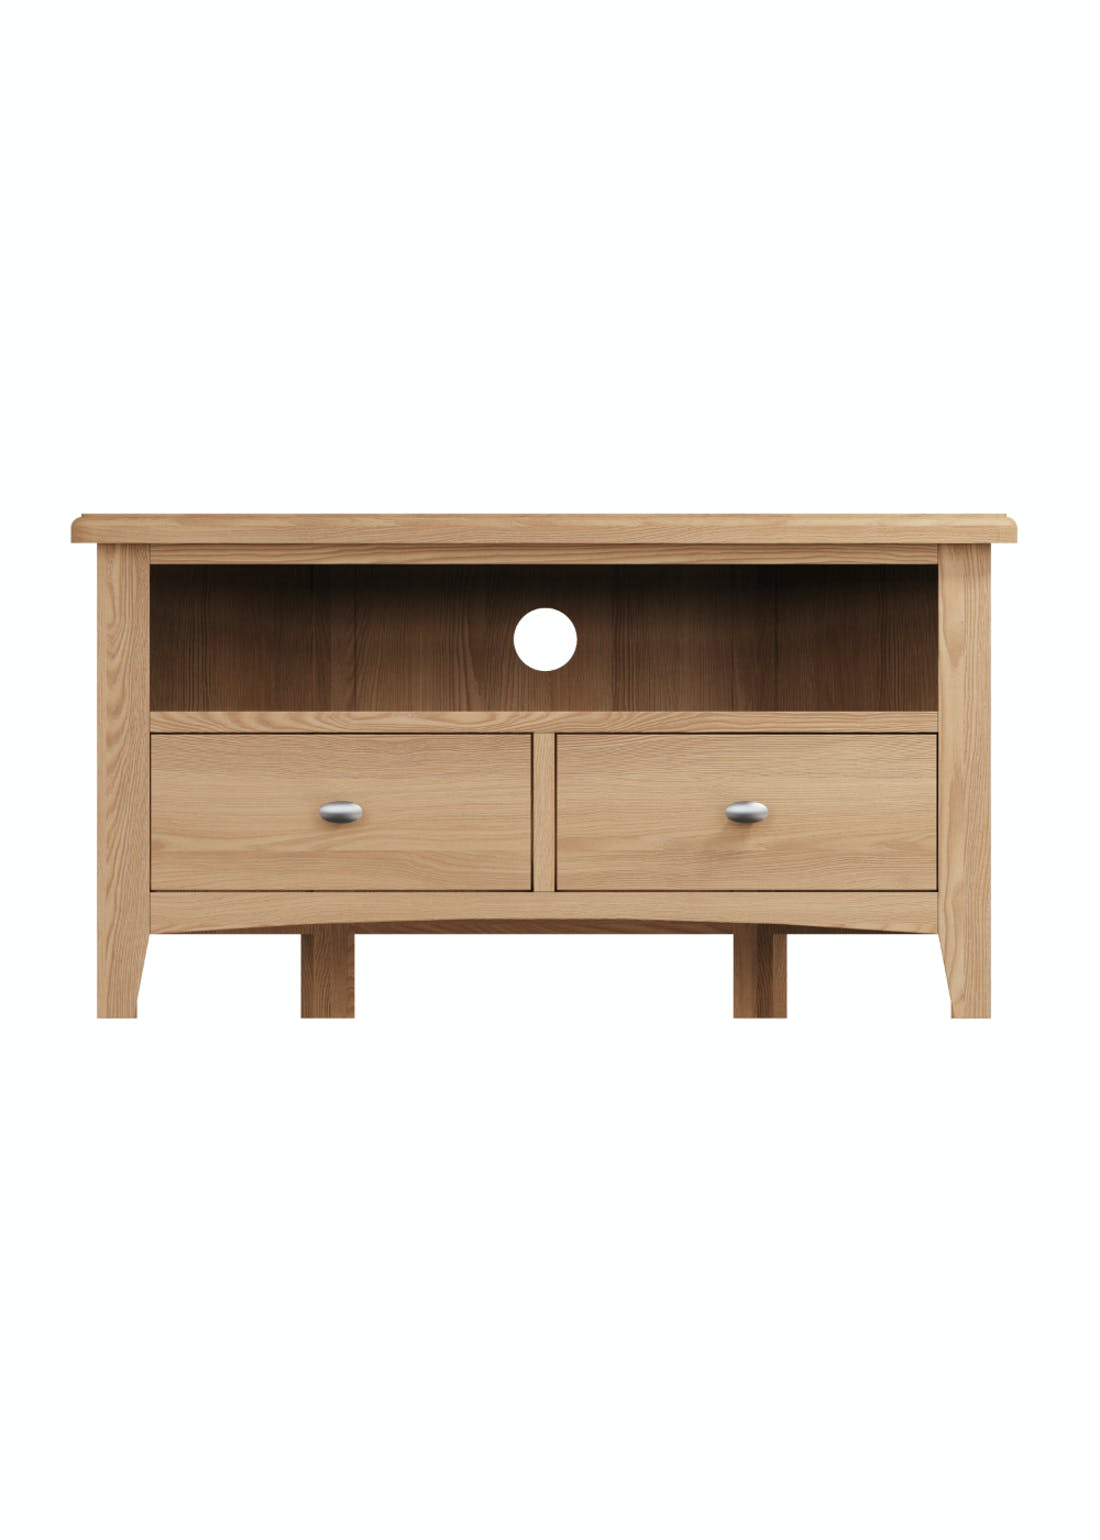 Interiors Direct Grayson Corner TV Unit (90cm x 48cm x 44cm)